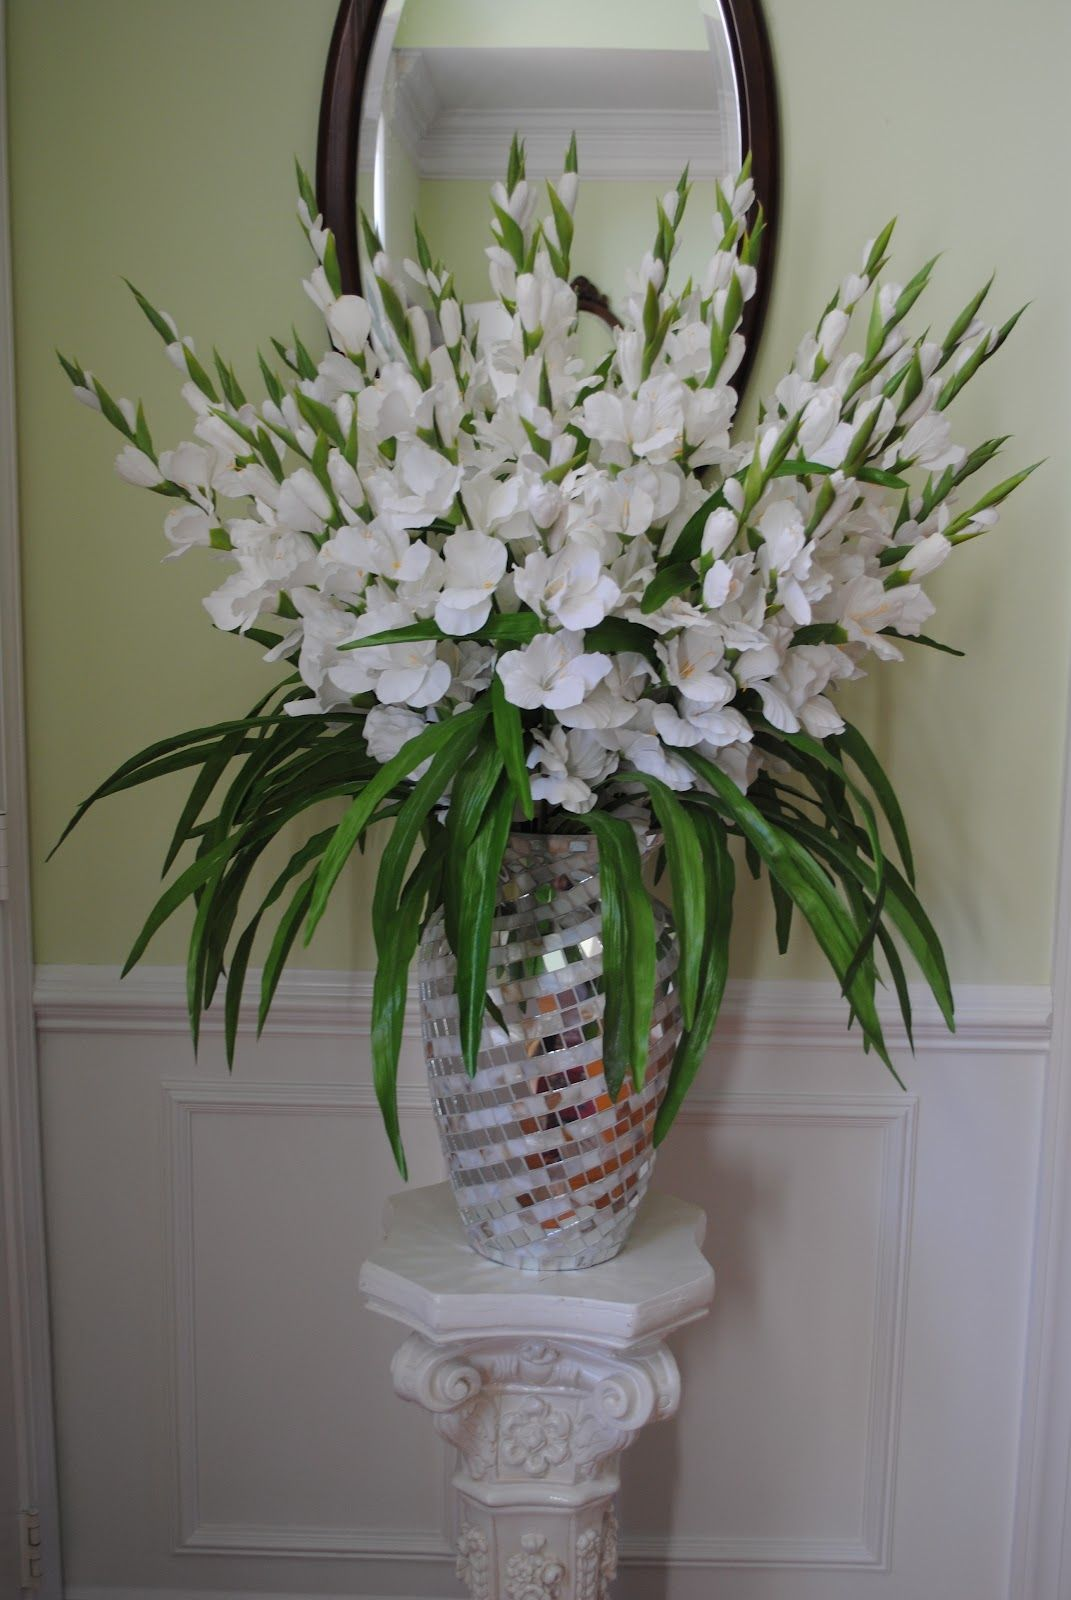 Christmas Holiday Ideas Snow White Silk Gladiolus Large Flower Arrangements Fresh Flowers Arrangements Church Flower Arrangements